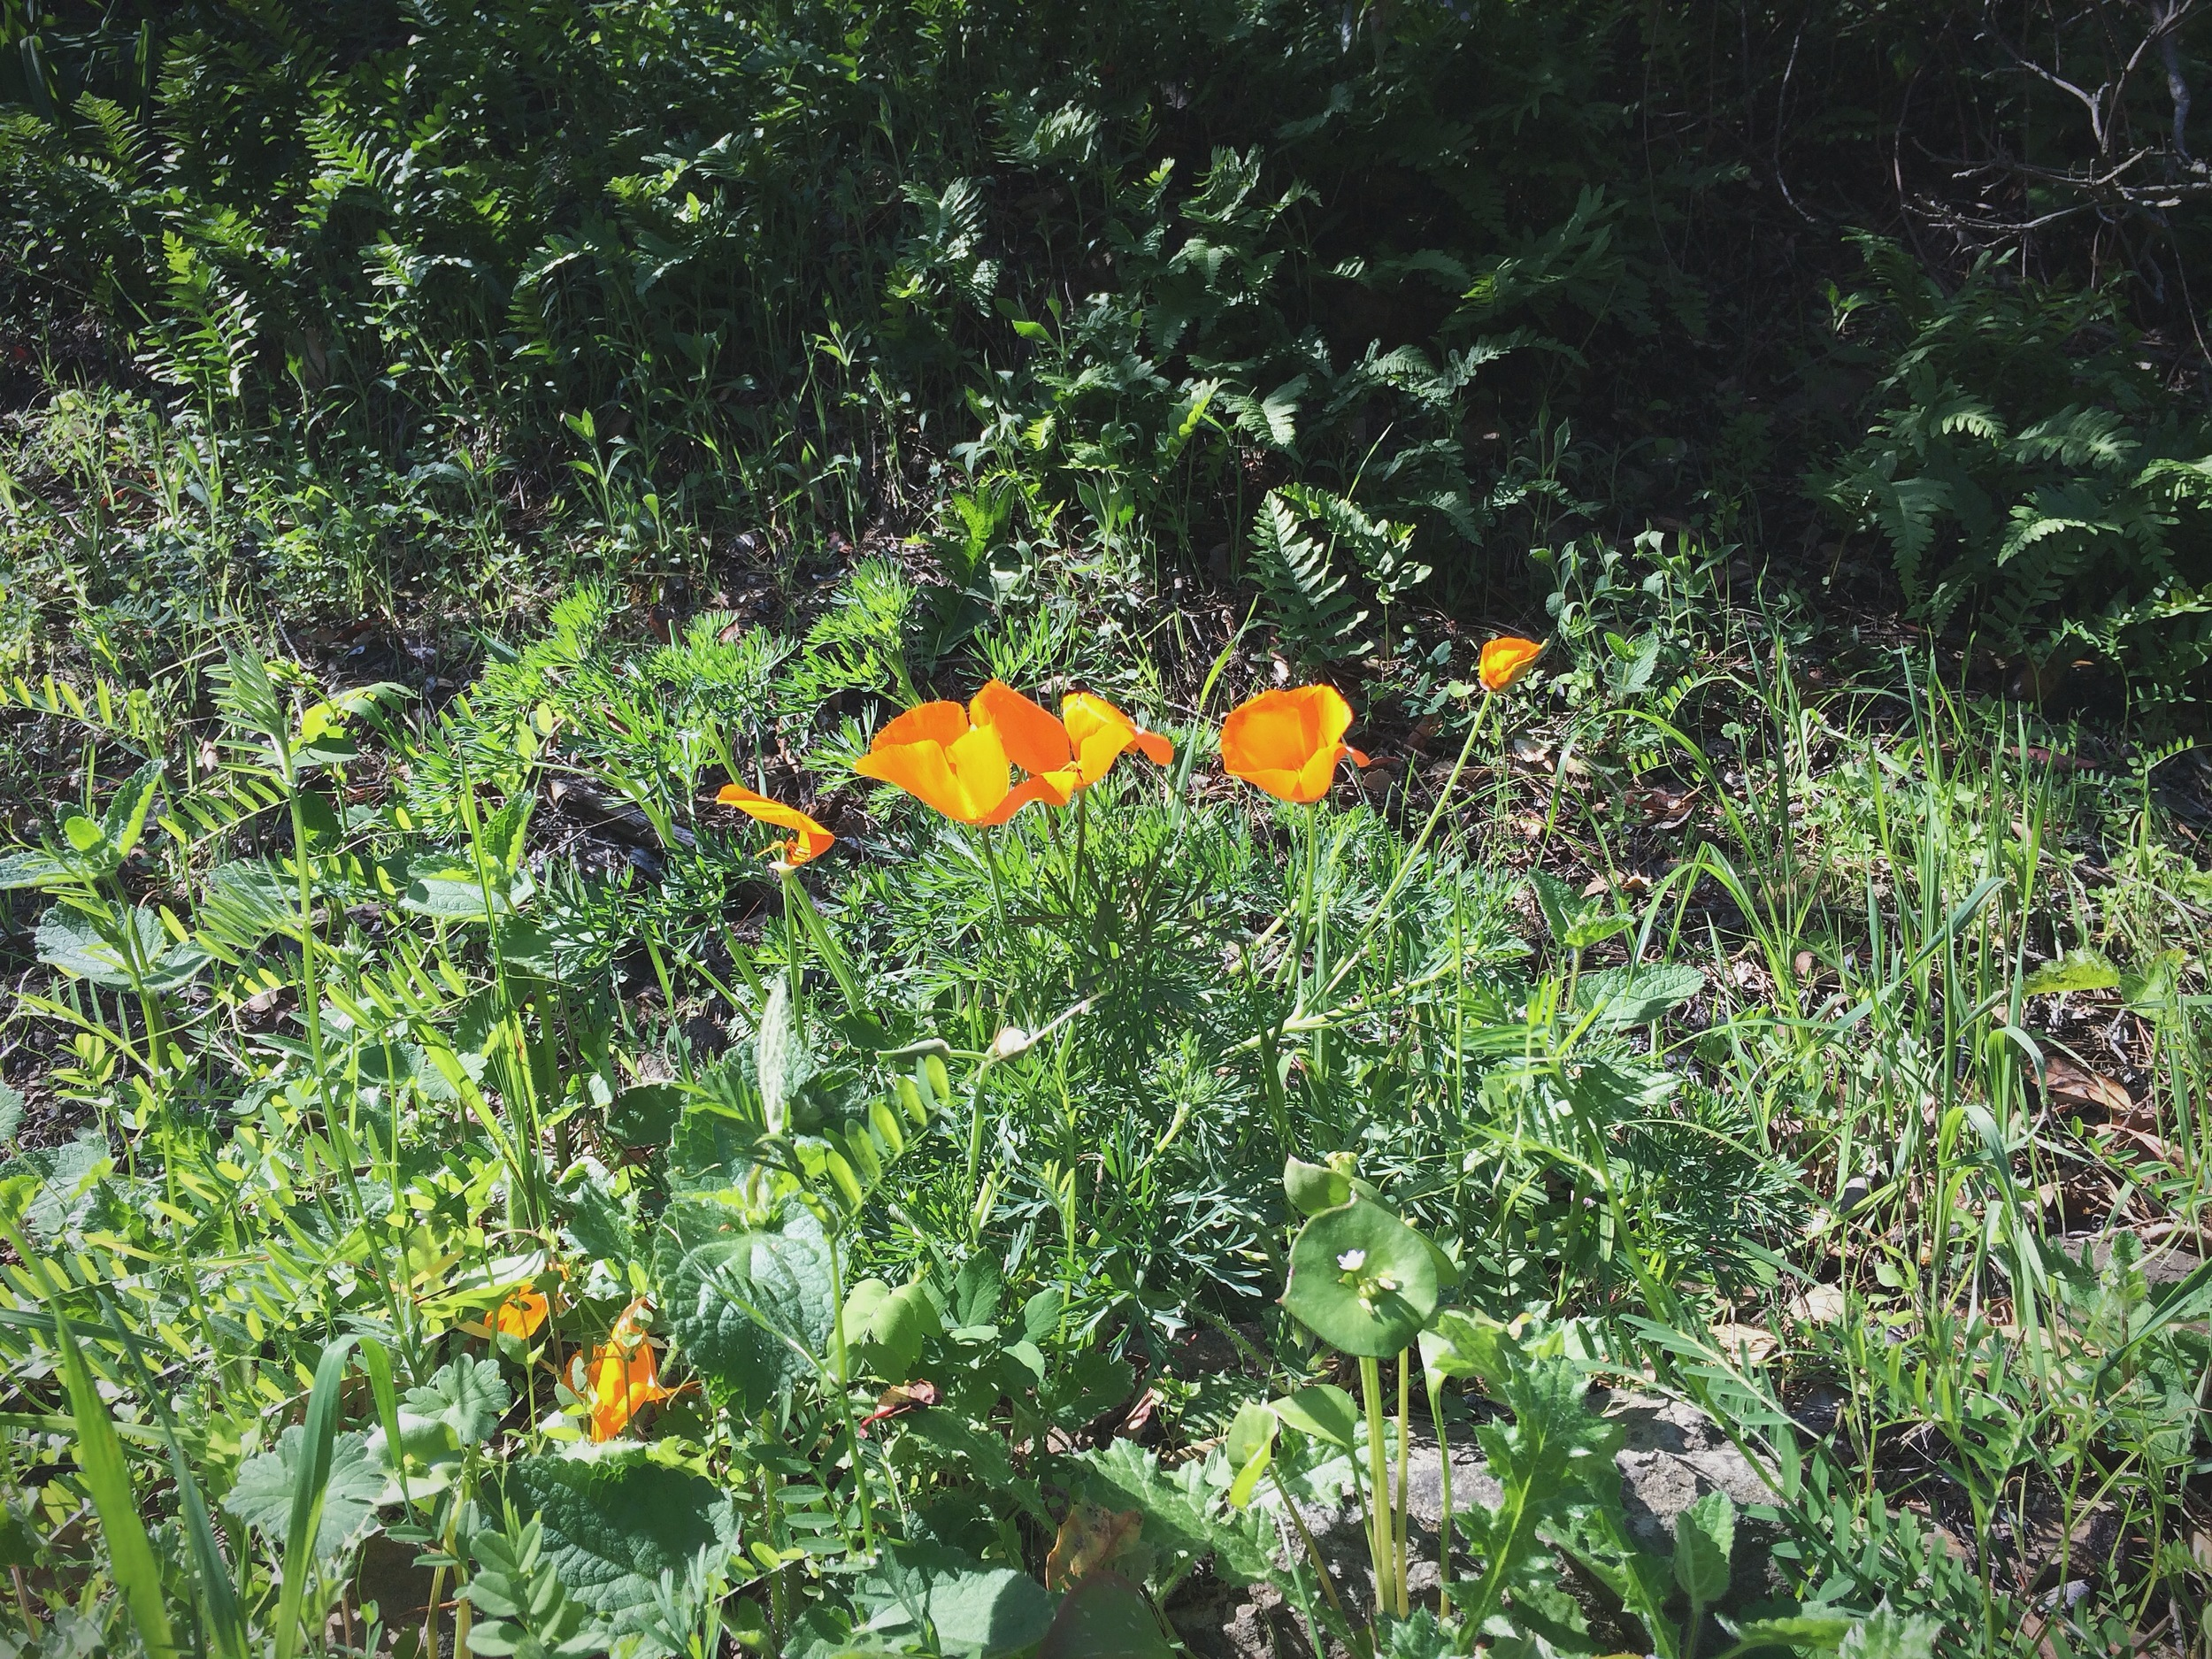 Well, these I do know--they're our California Poppies.